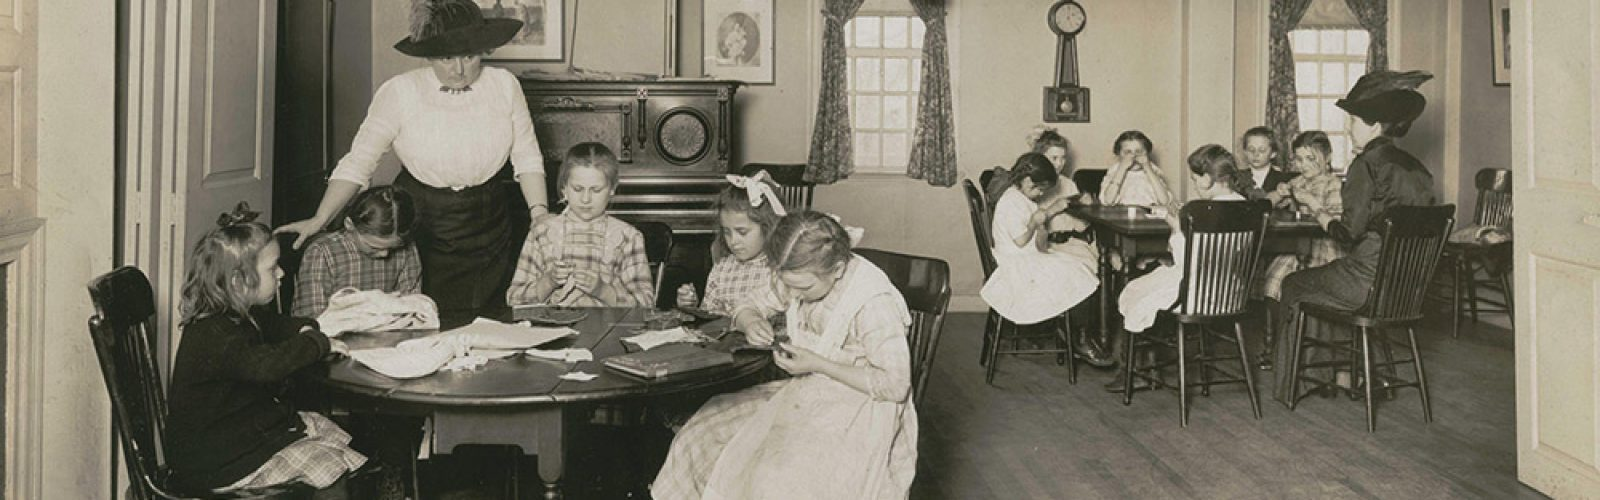 Caroline Emmerton is standing talking to children as they write around a table in the House of the Seven Gables.